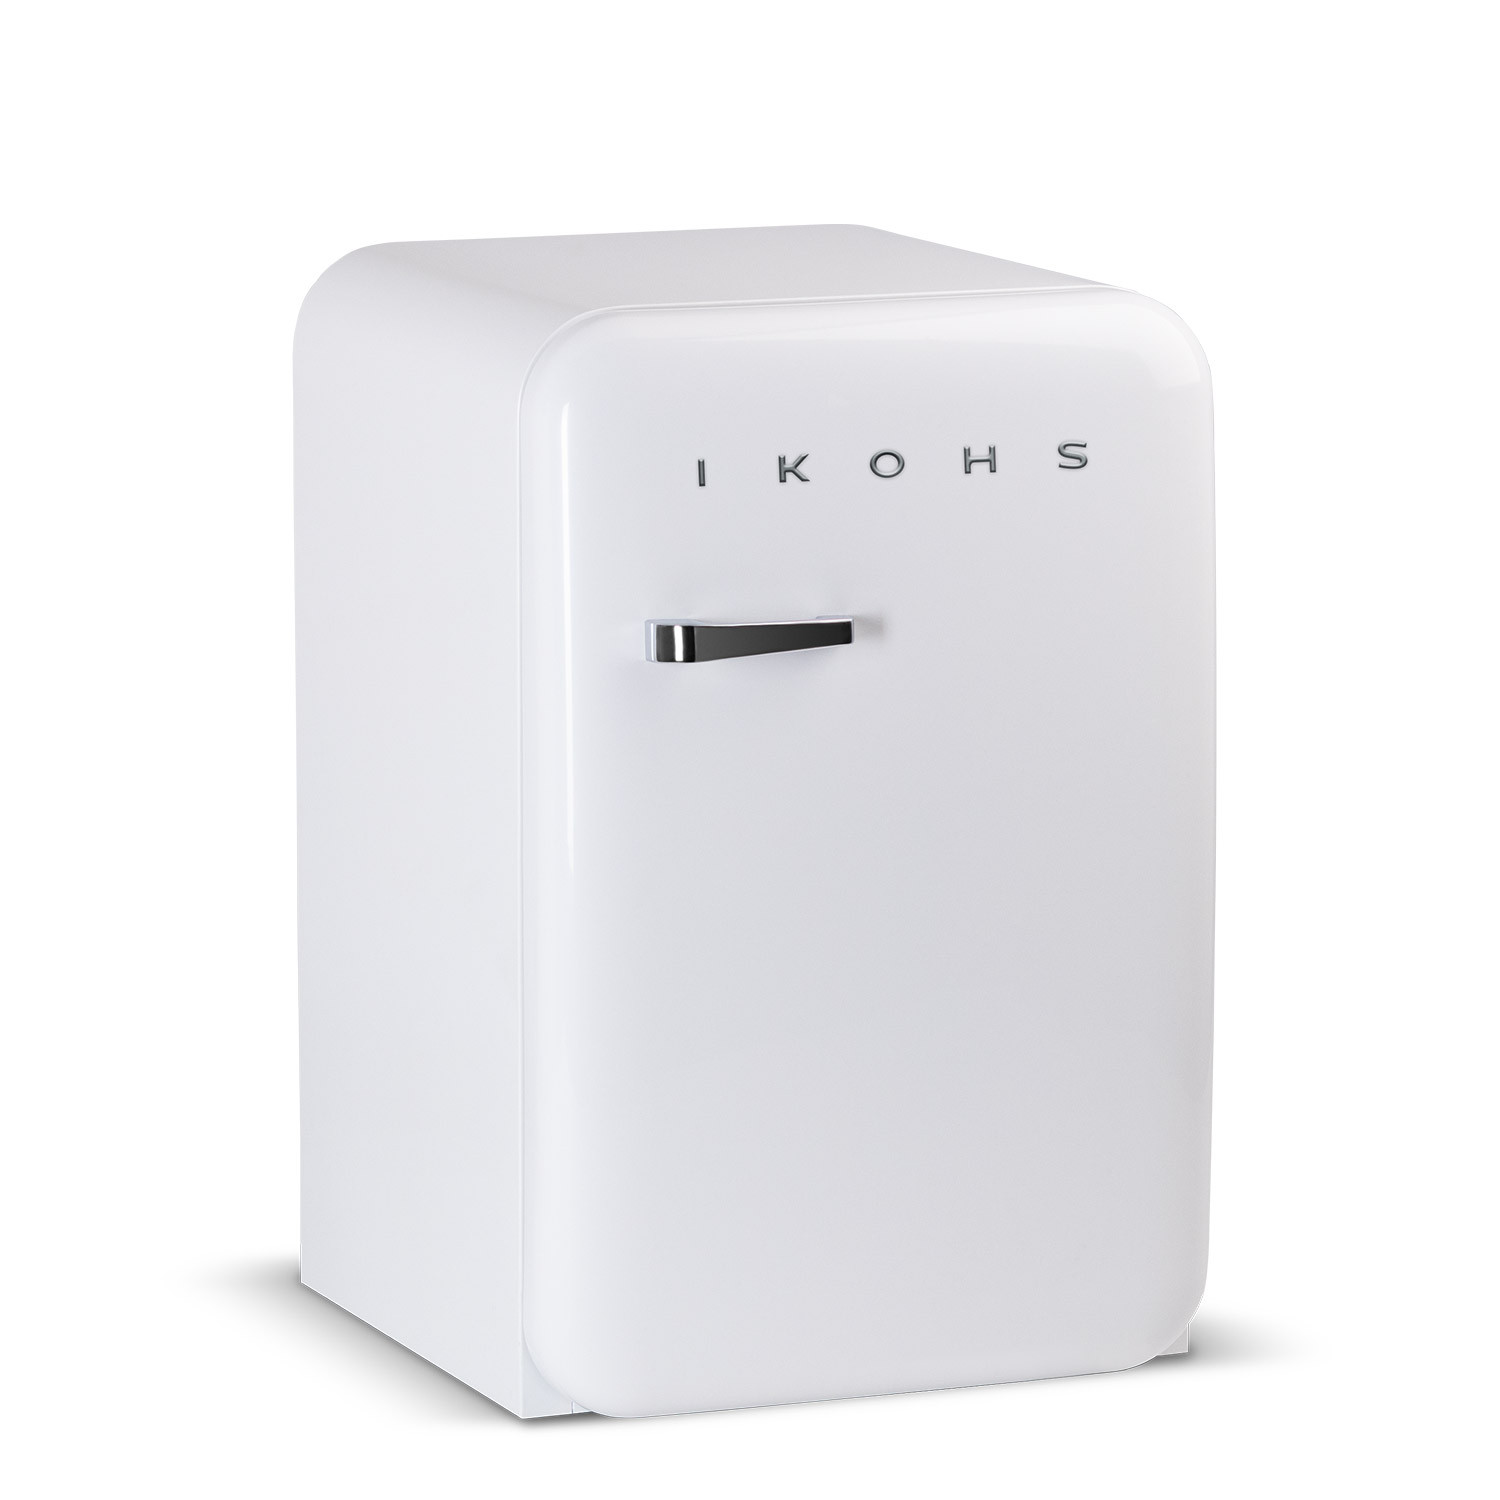 Comprar RETRO FRIDGE 83.5 BLANCO - Frigorífico